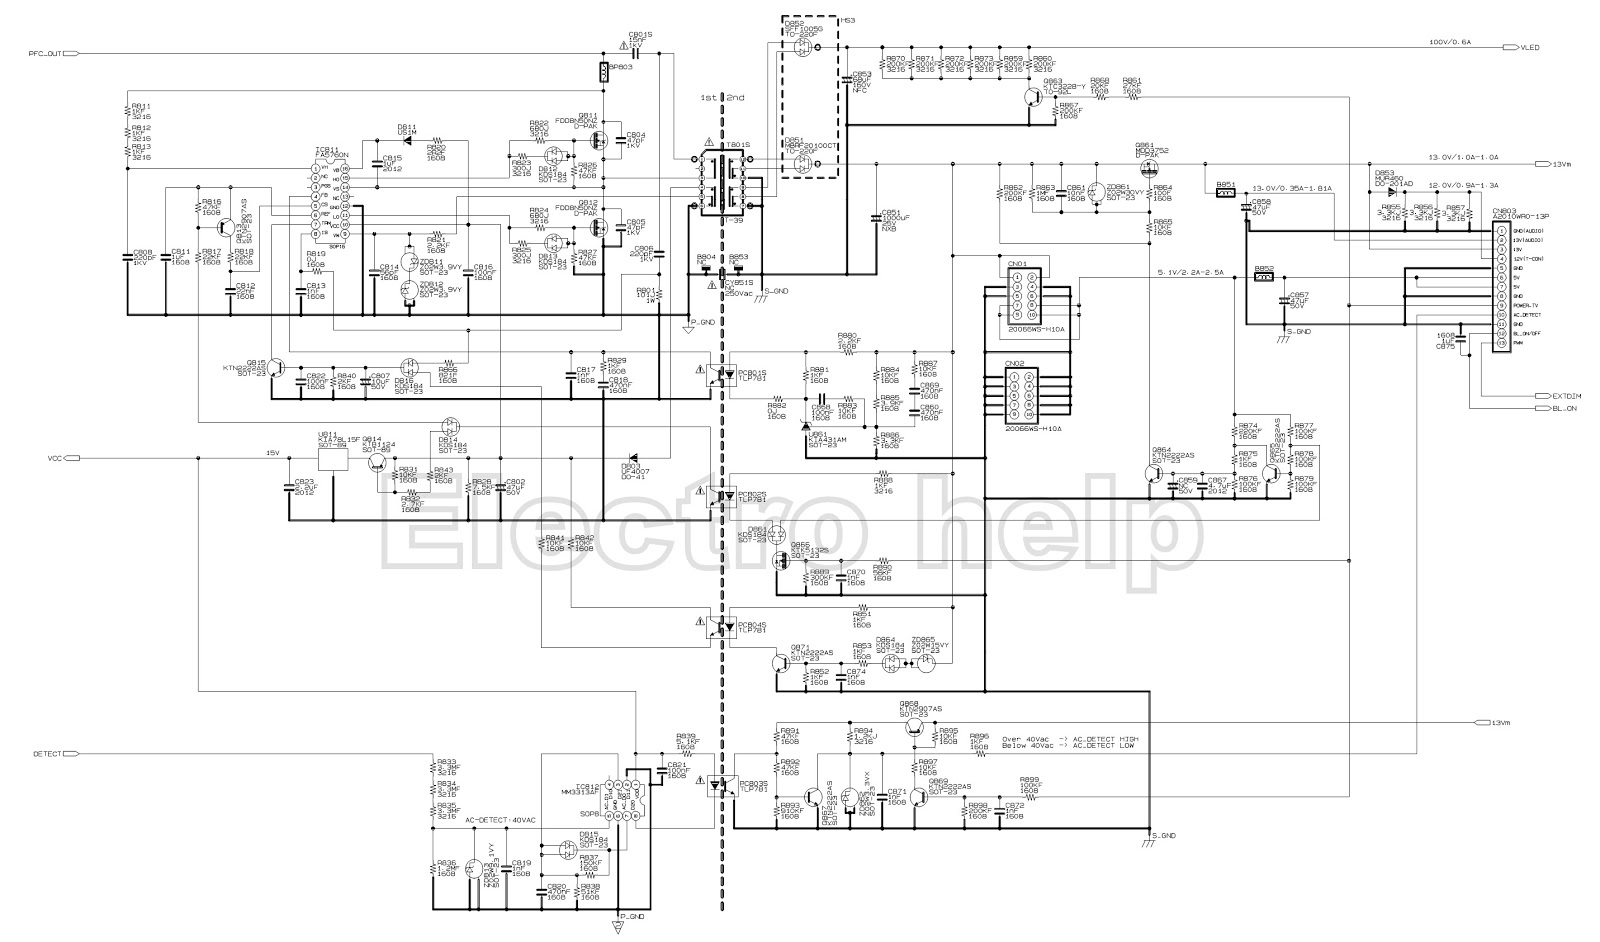 toshiba 32l2300 toshiba 39l2300 led lcd tv smps schematic 5v section led driver remote control handset [ 1600 x 942 Pixel ]